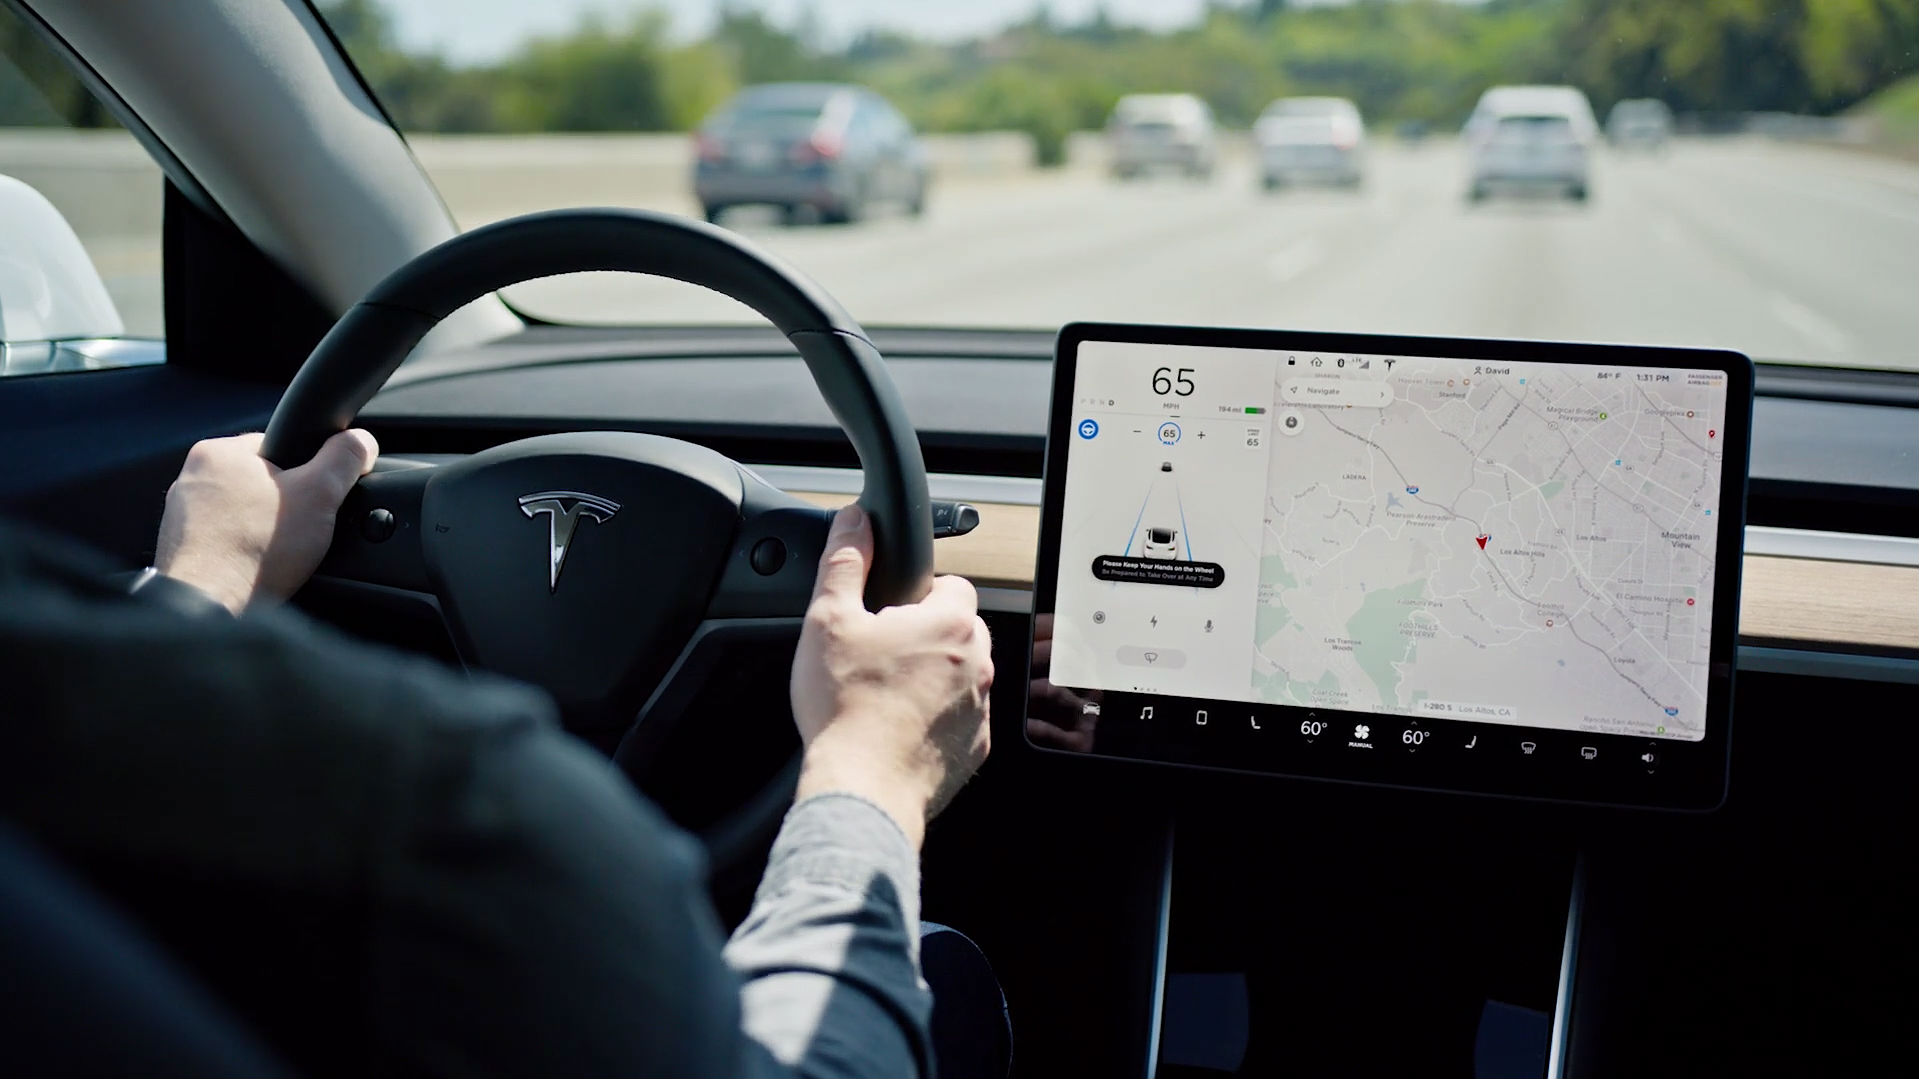 Tesla readies for Autonomy Day, live stream of self-driving event begins 11 am PT on April 22